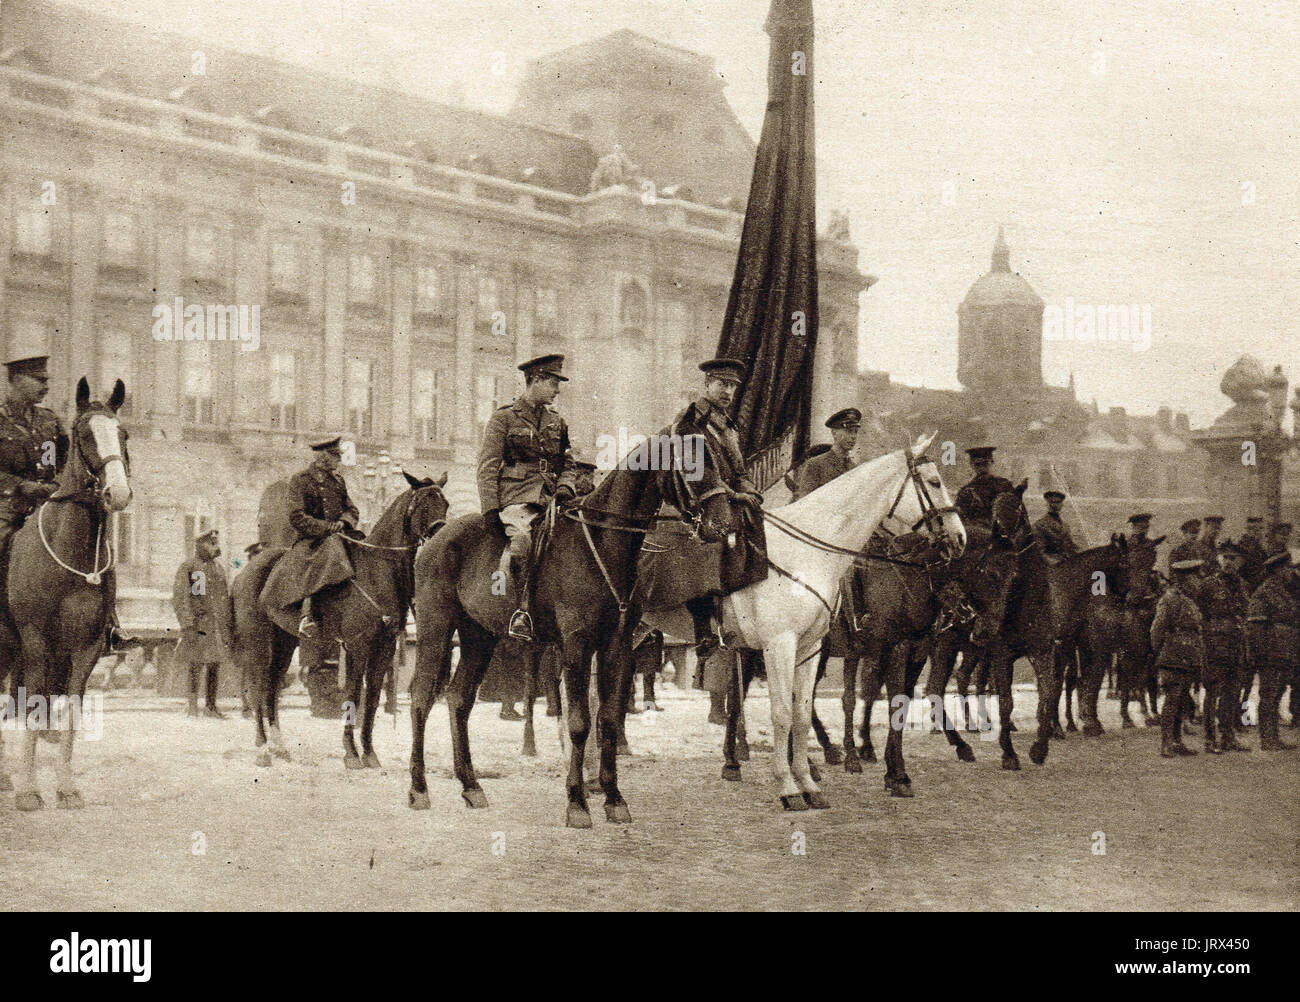 King Albert, Prince Albert & Prince of wales (future Edward VIII) reviewing British troops in Brussels Stock Photo